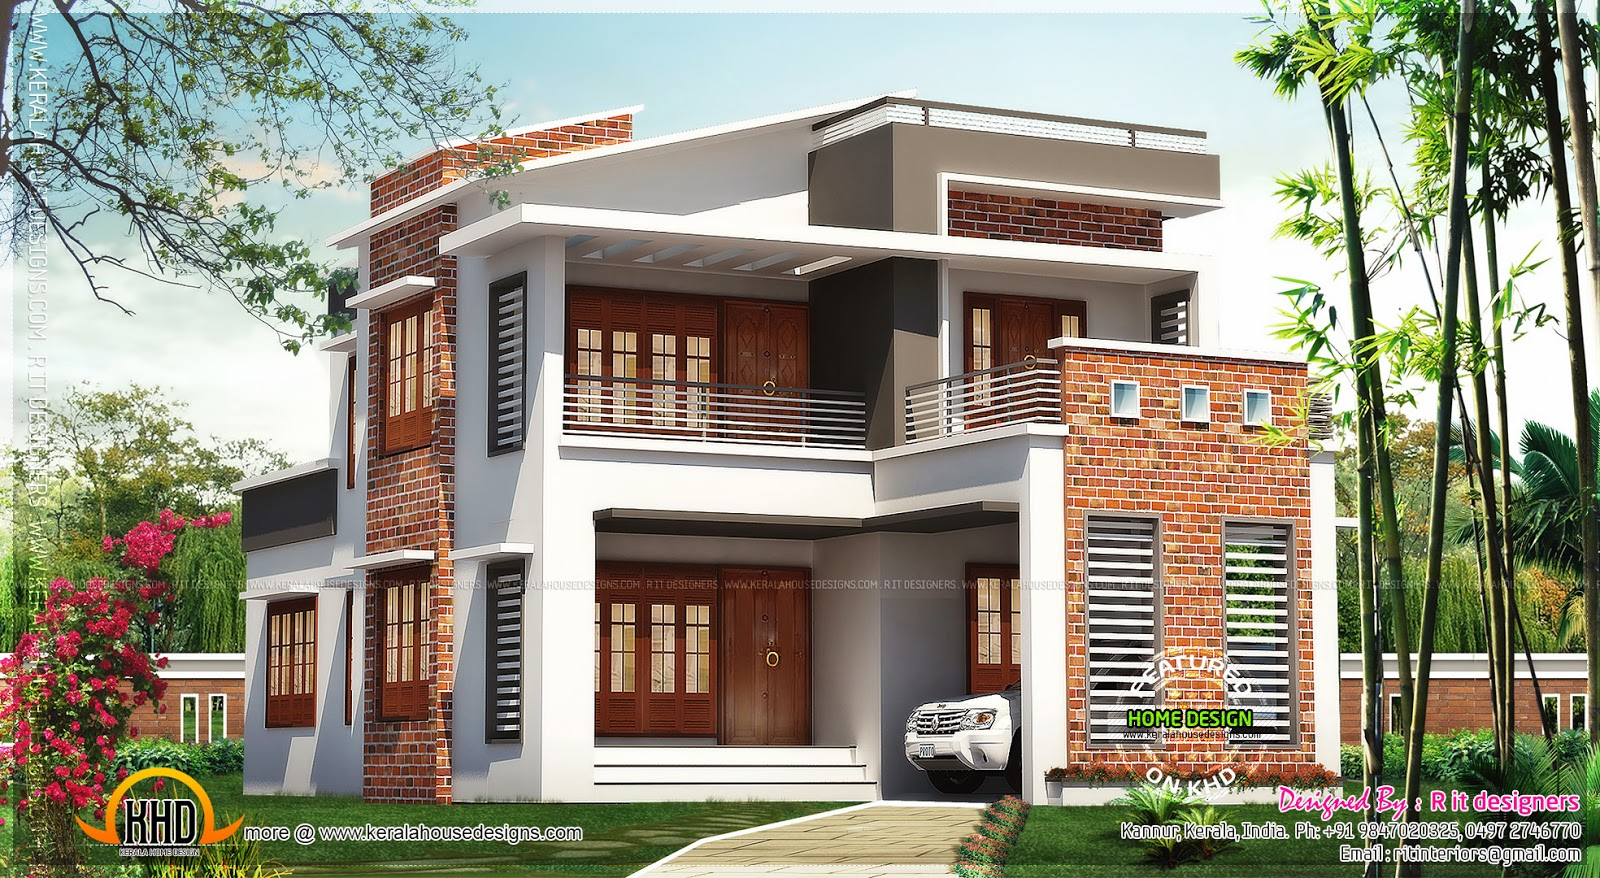 Brick mix house exterior design kerala home design and for Home outside design images